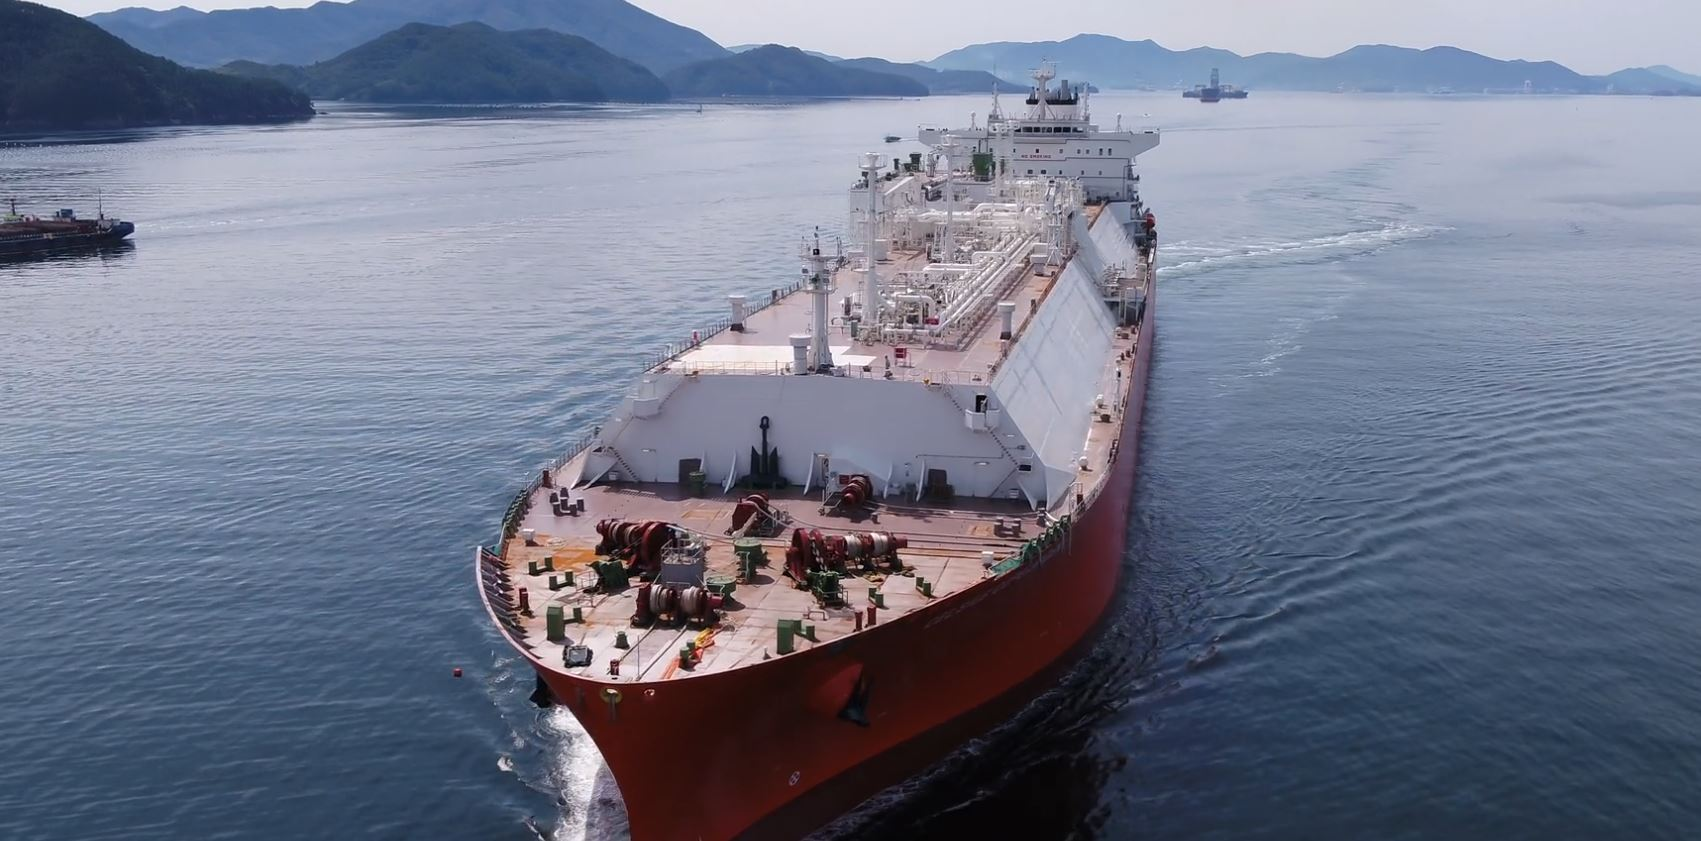 Denmark's Celsius adds fourth LNG newbuild to its fleet